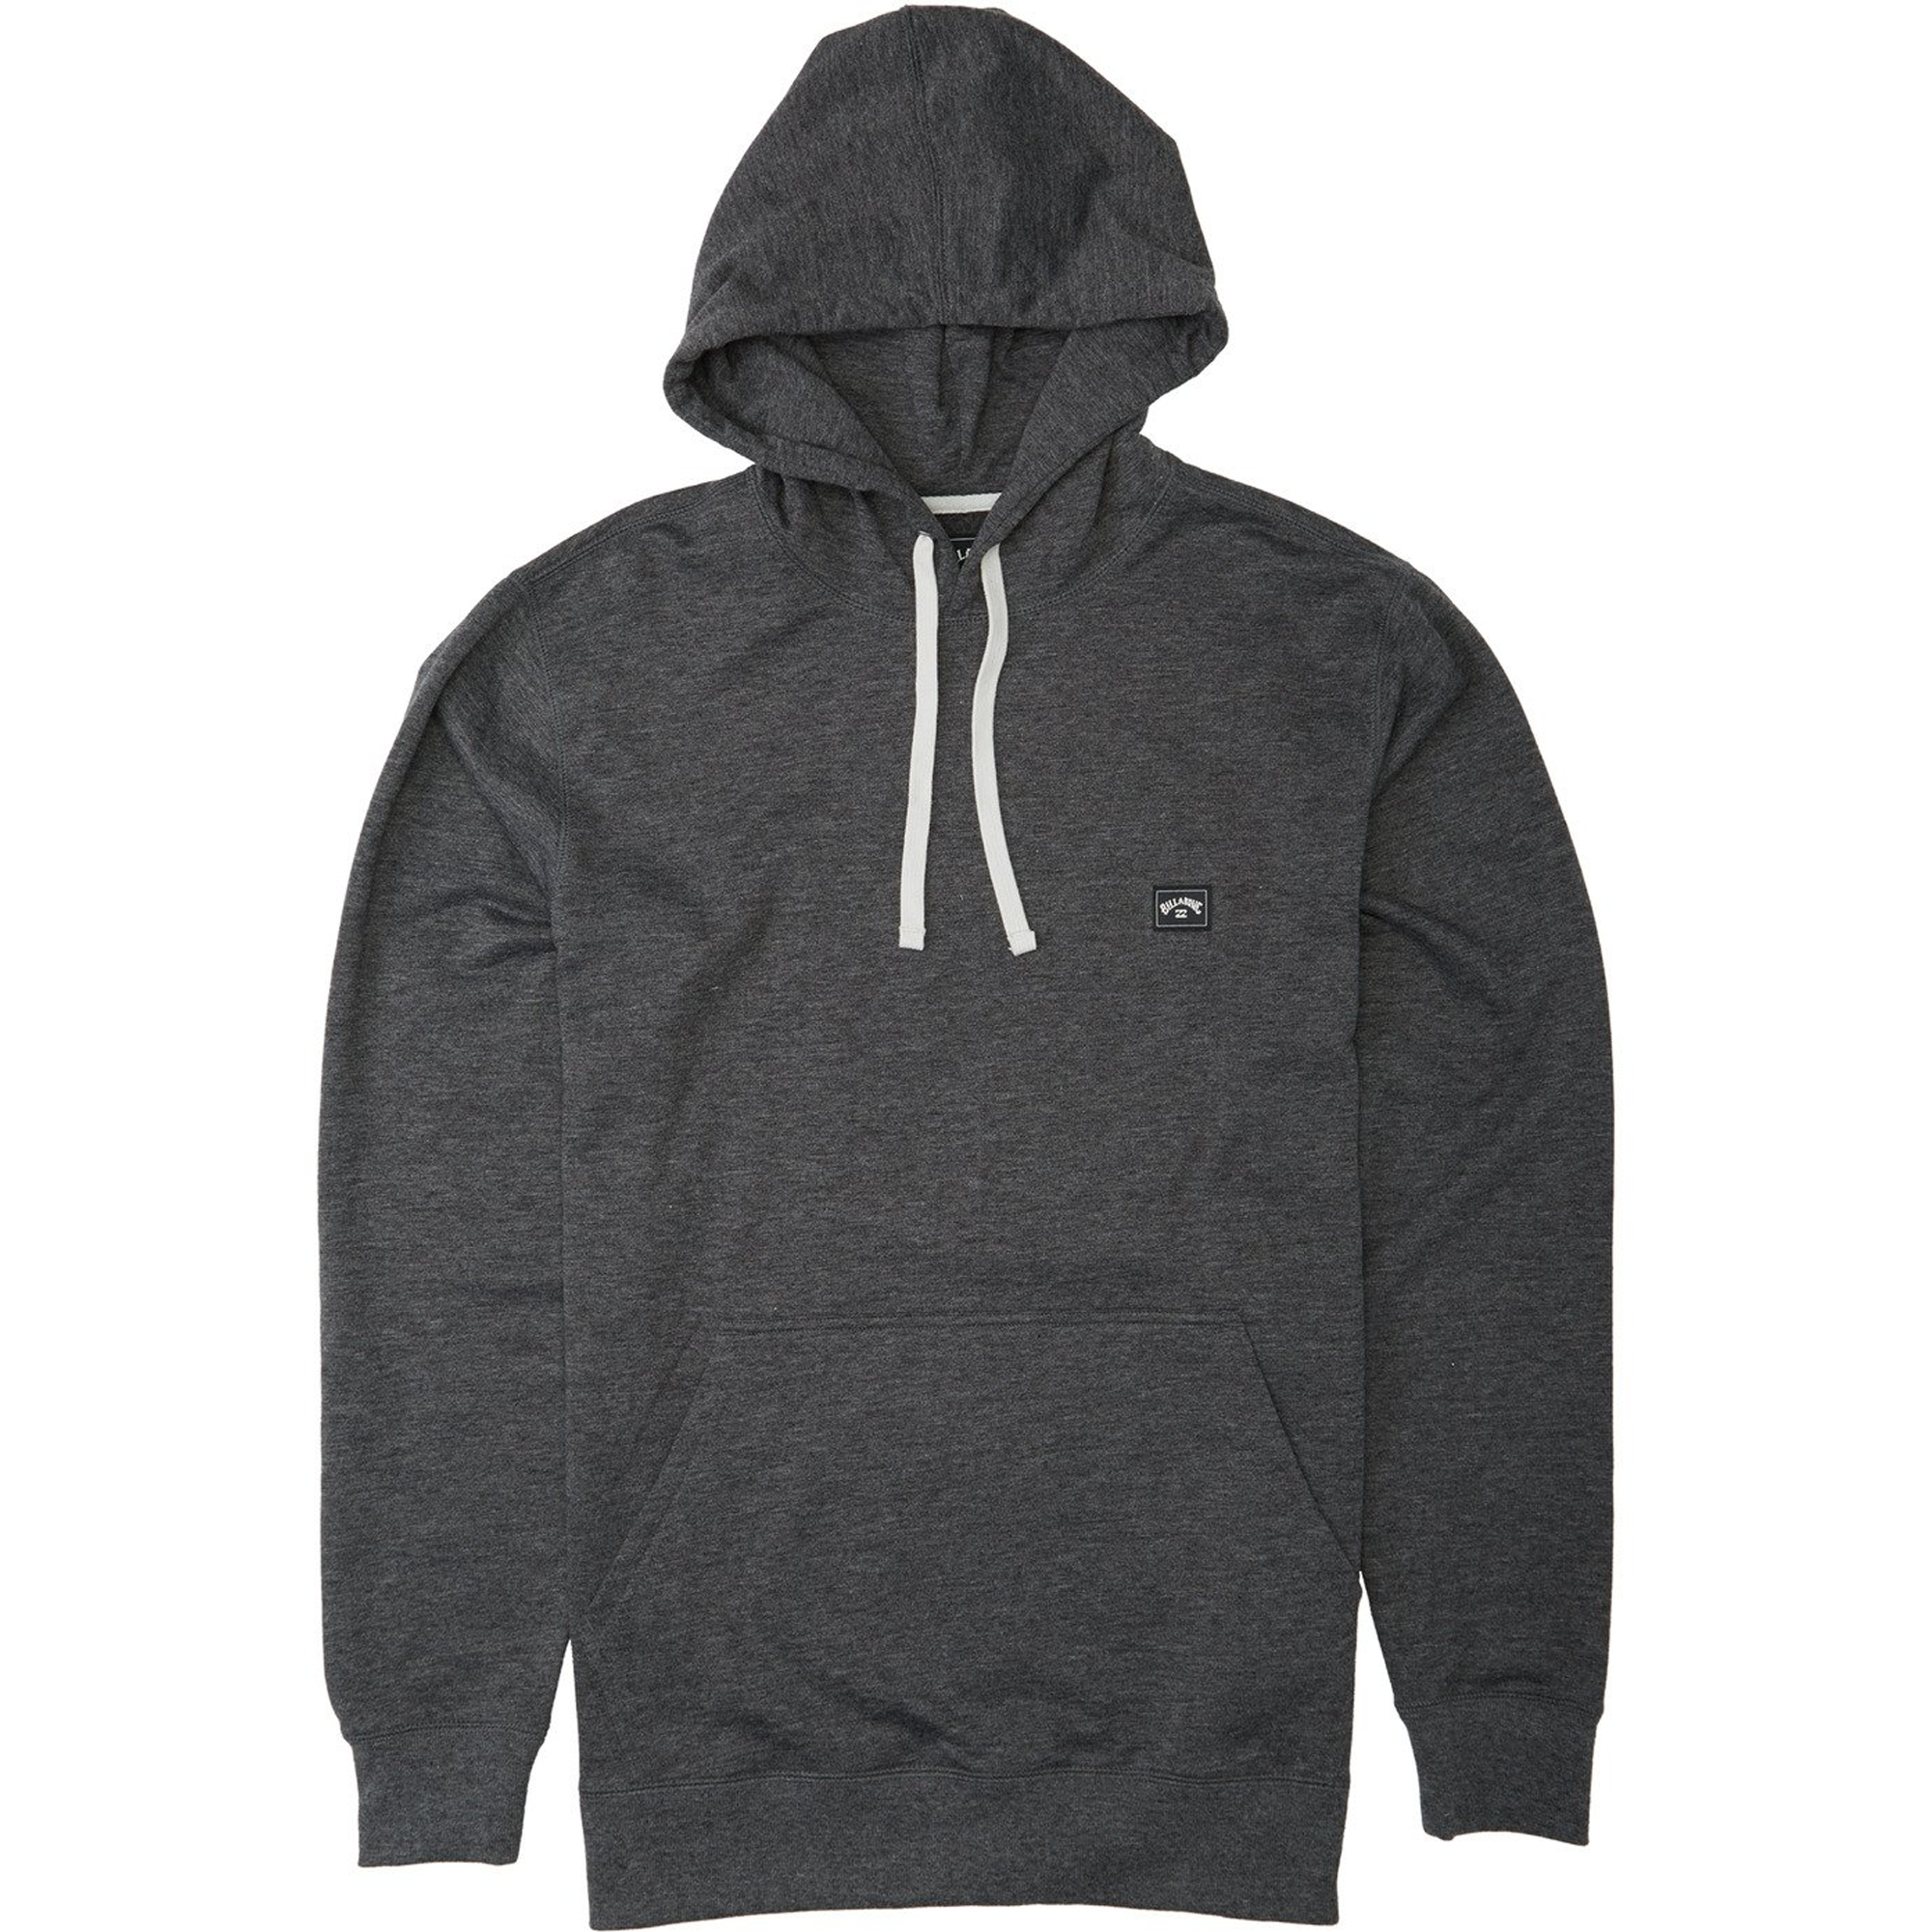 Billabong All Day Pull Over Men's Hoodie